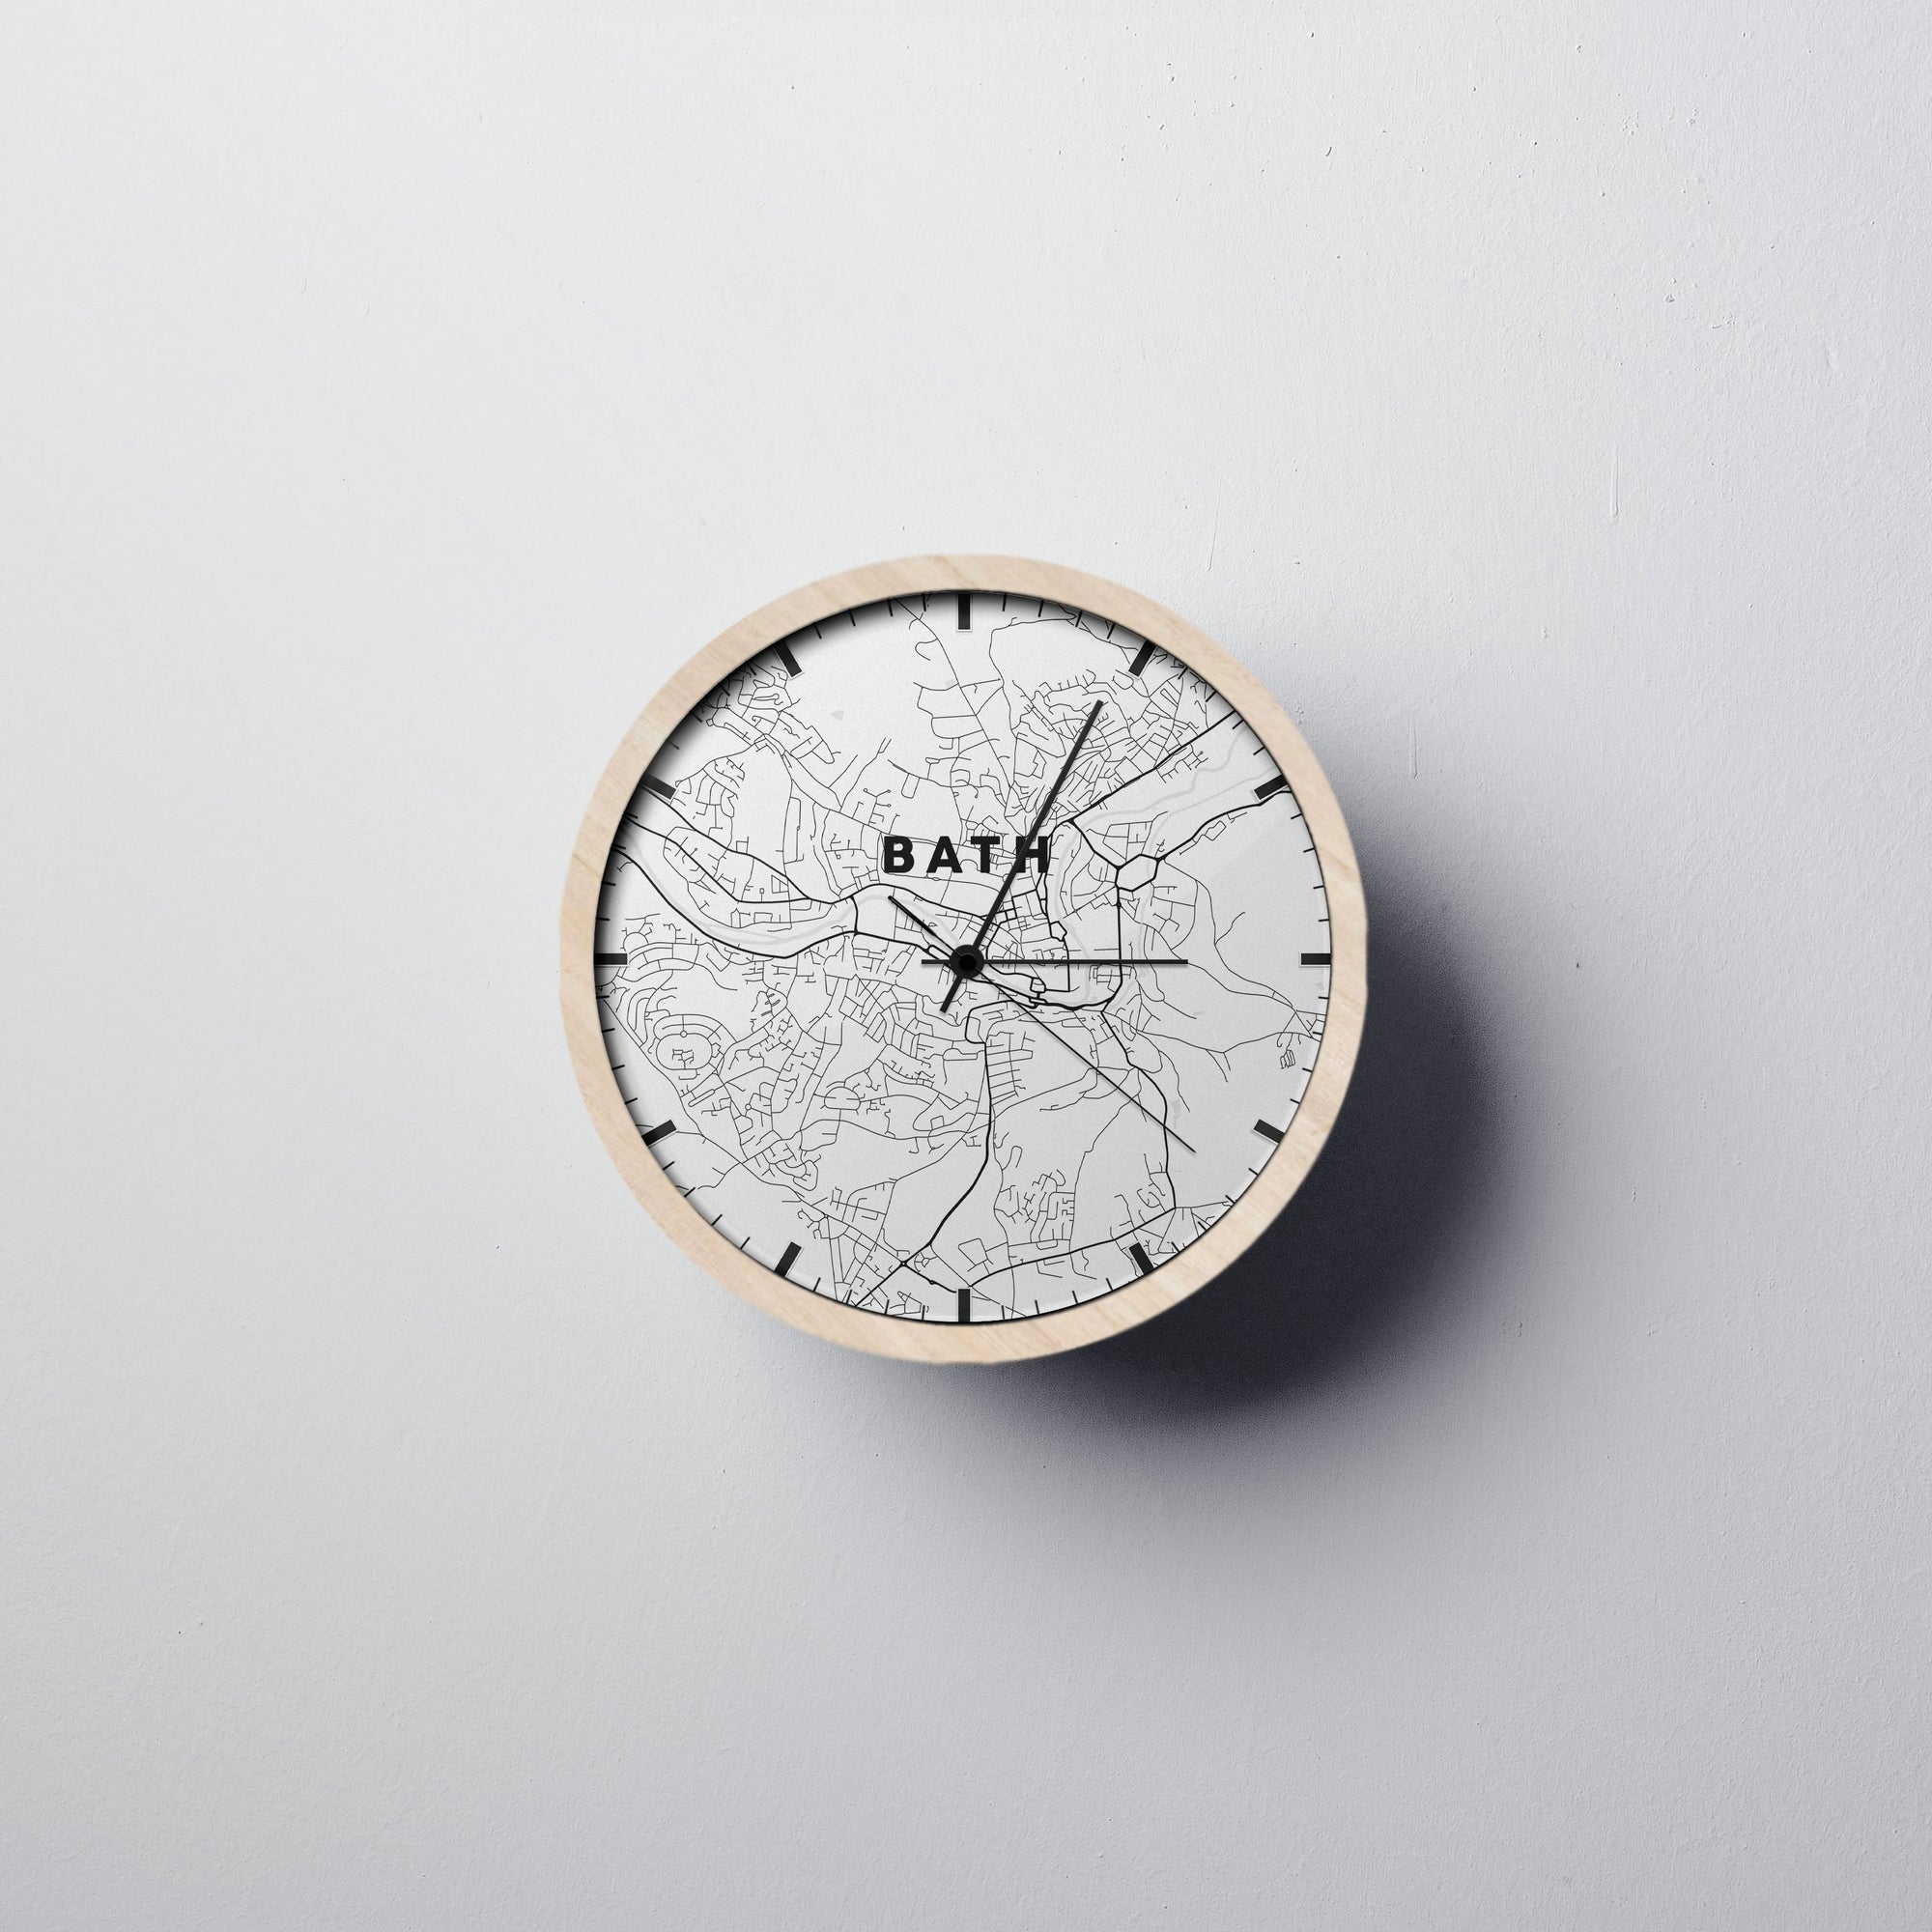 Bath Wall Clock - Point Two Design